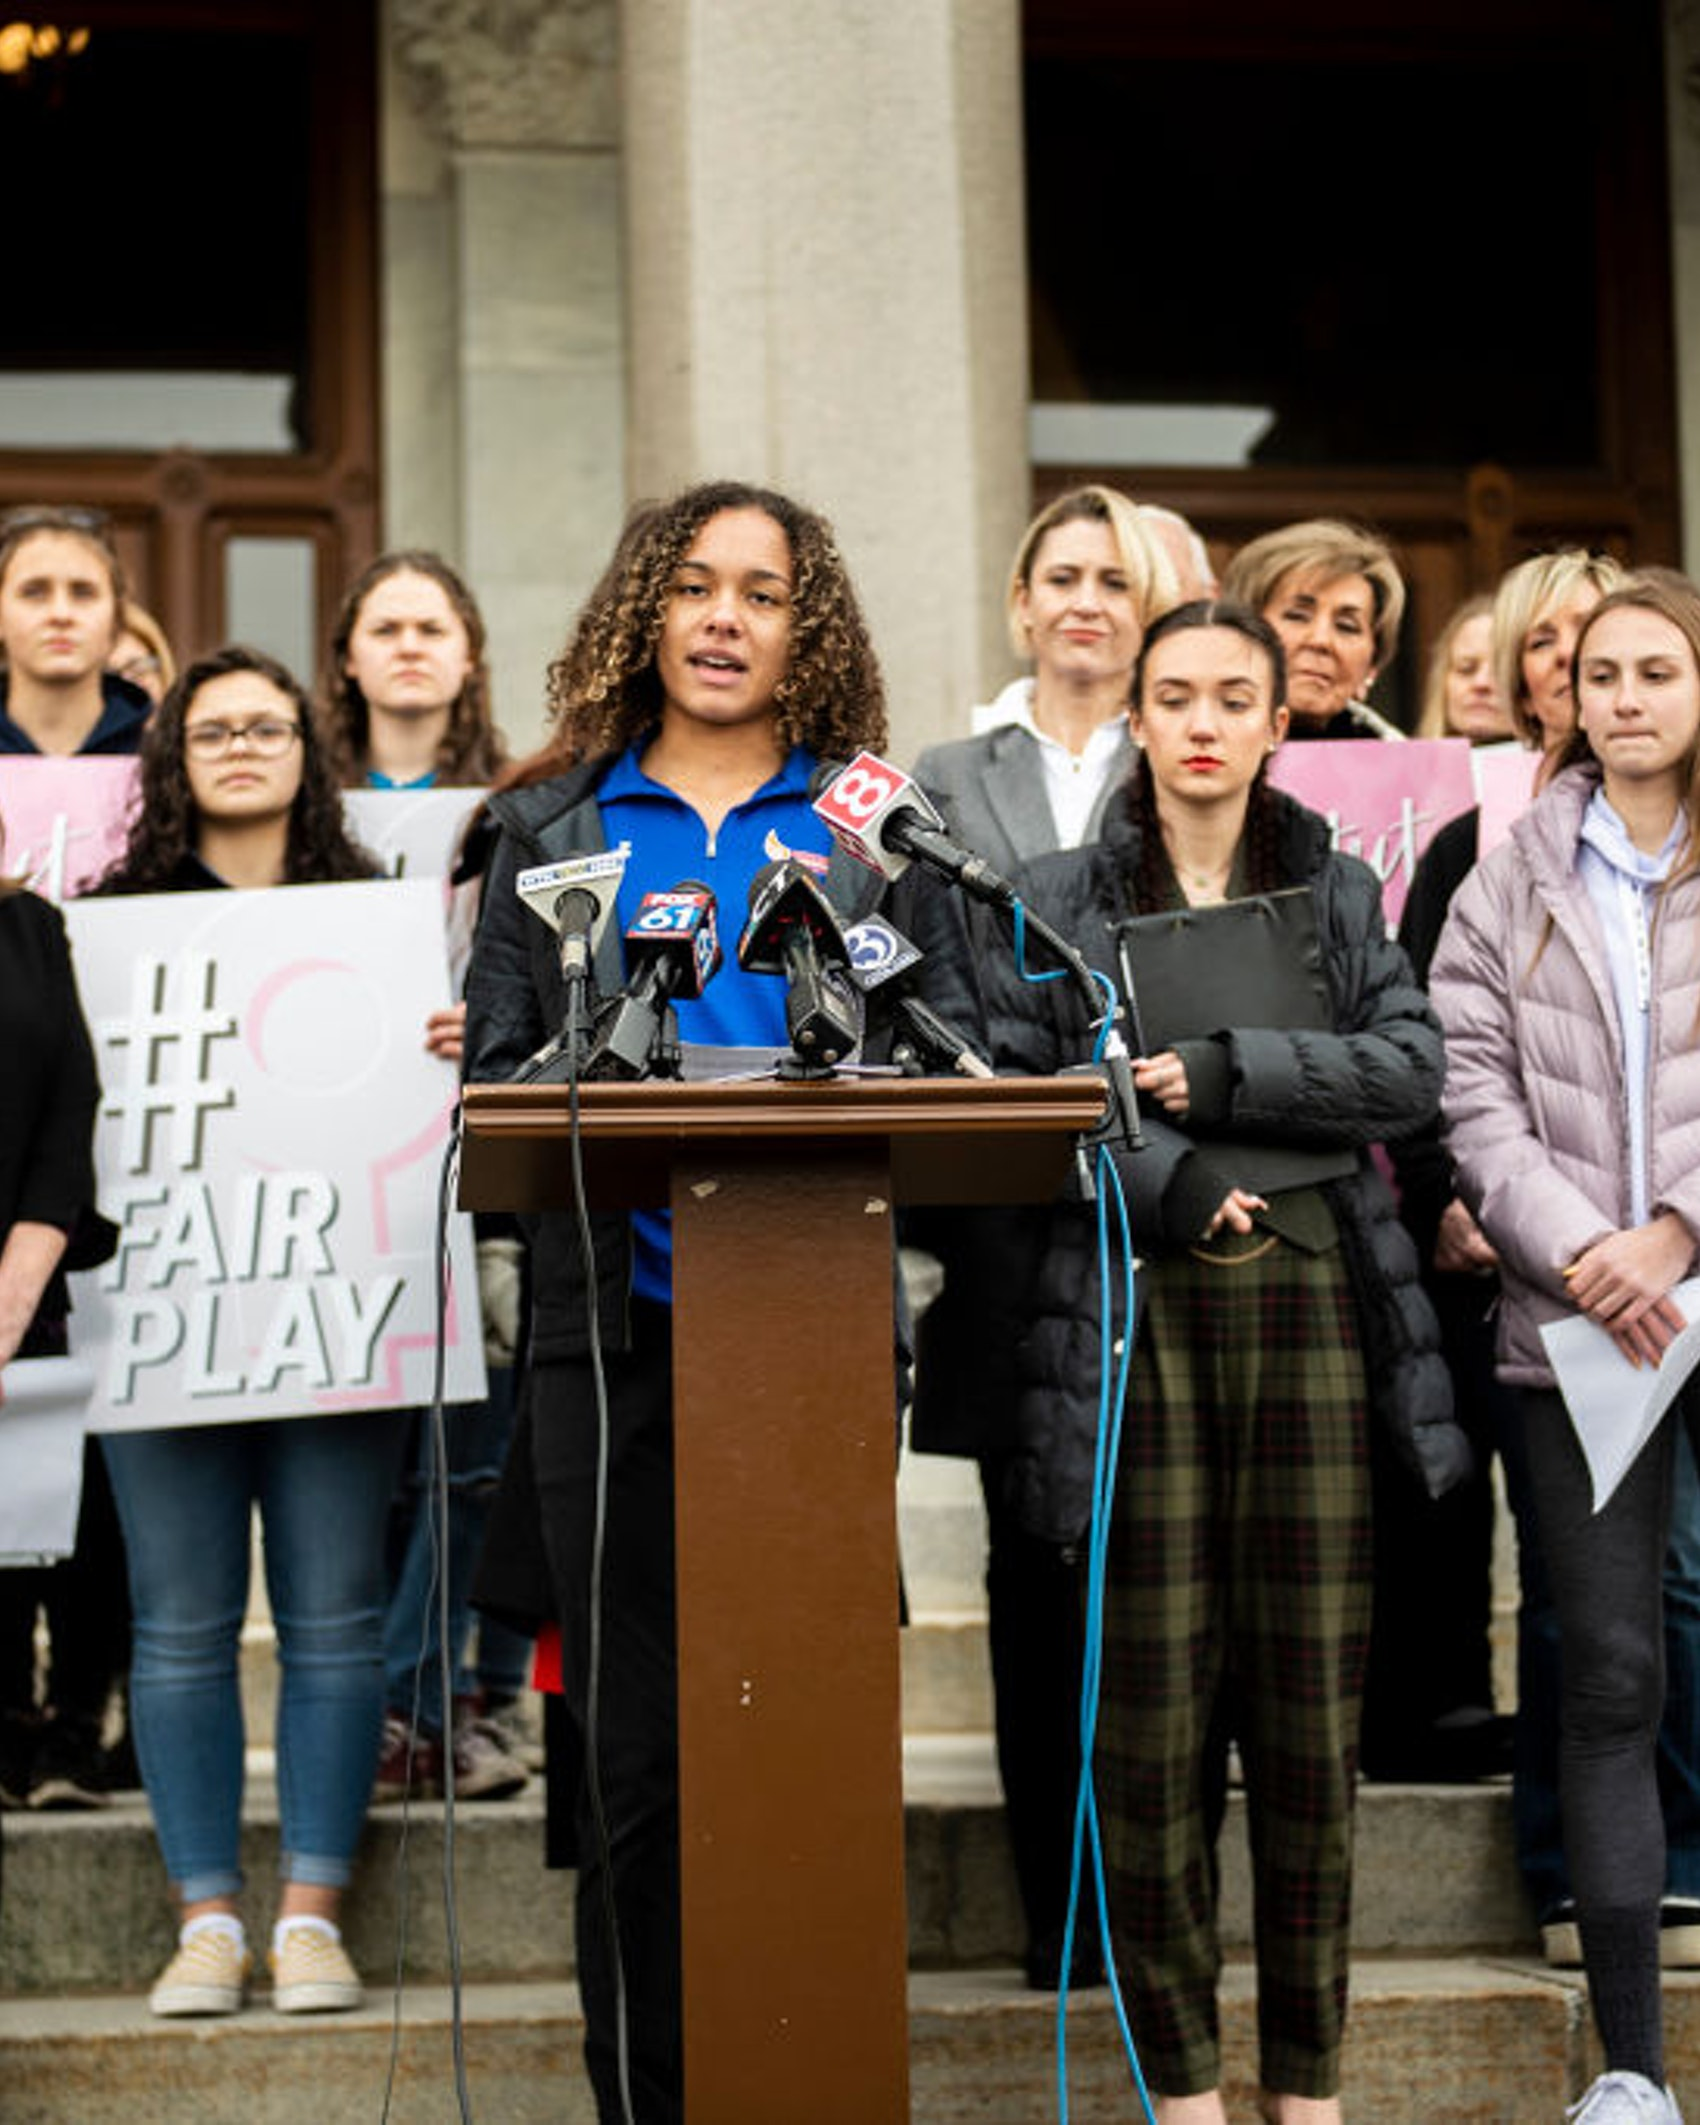 Danbury High School sophomore Alanna Smith speaks during a press conference at the Connecticut State Capitol Wednesday, Feb. 12, 2020, in downtown Hartford, Conn.